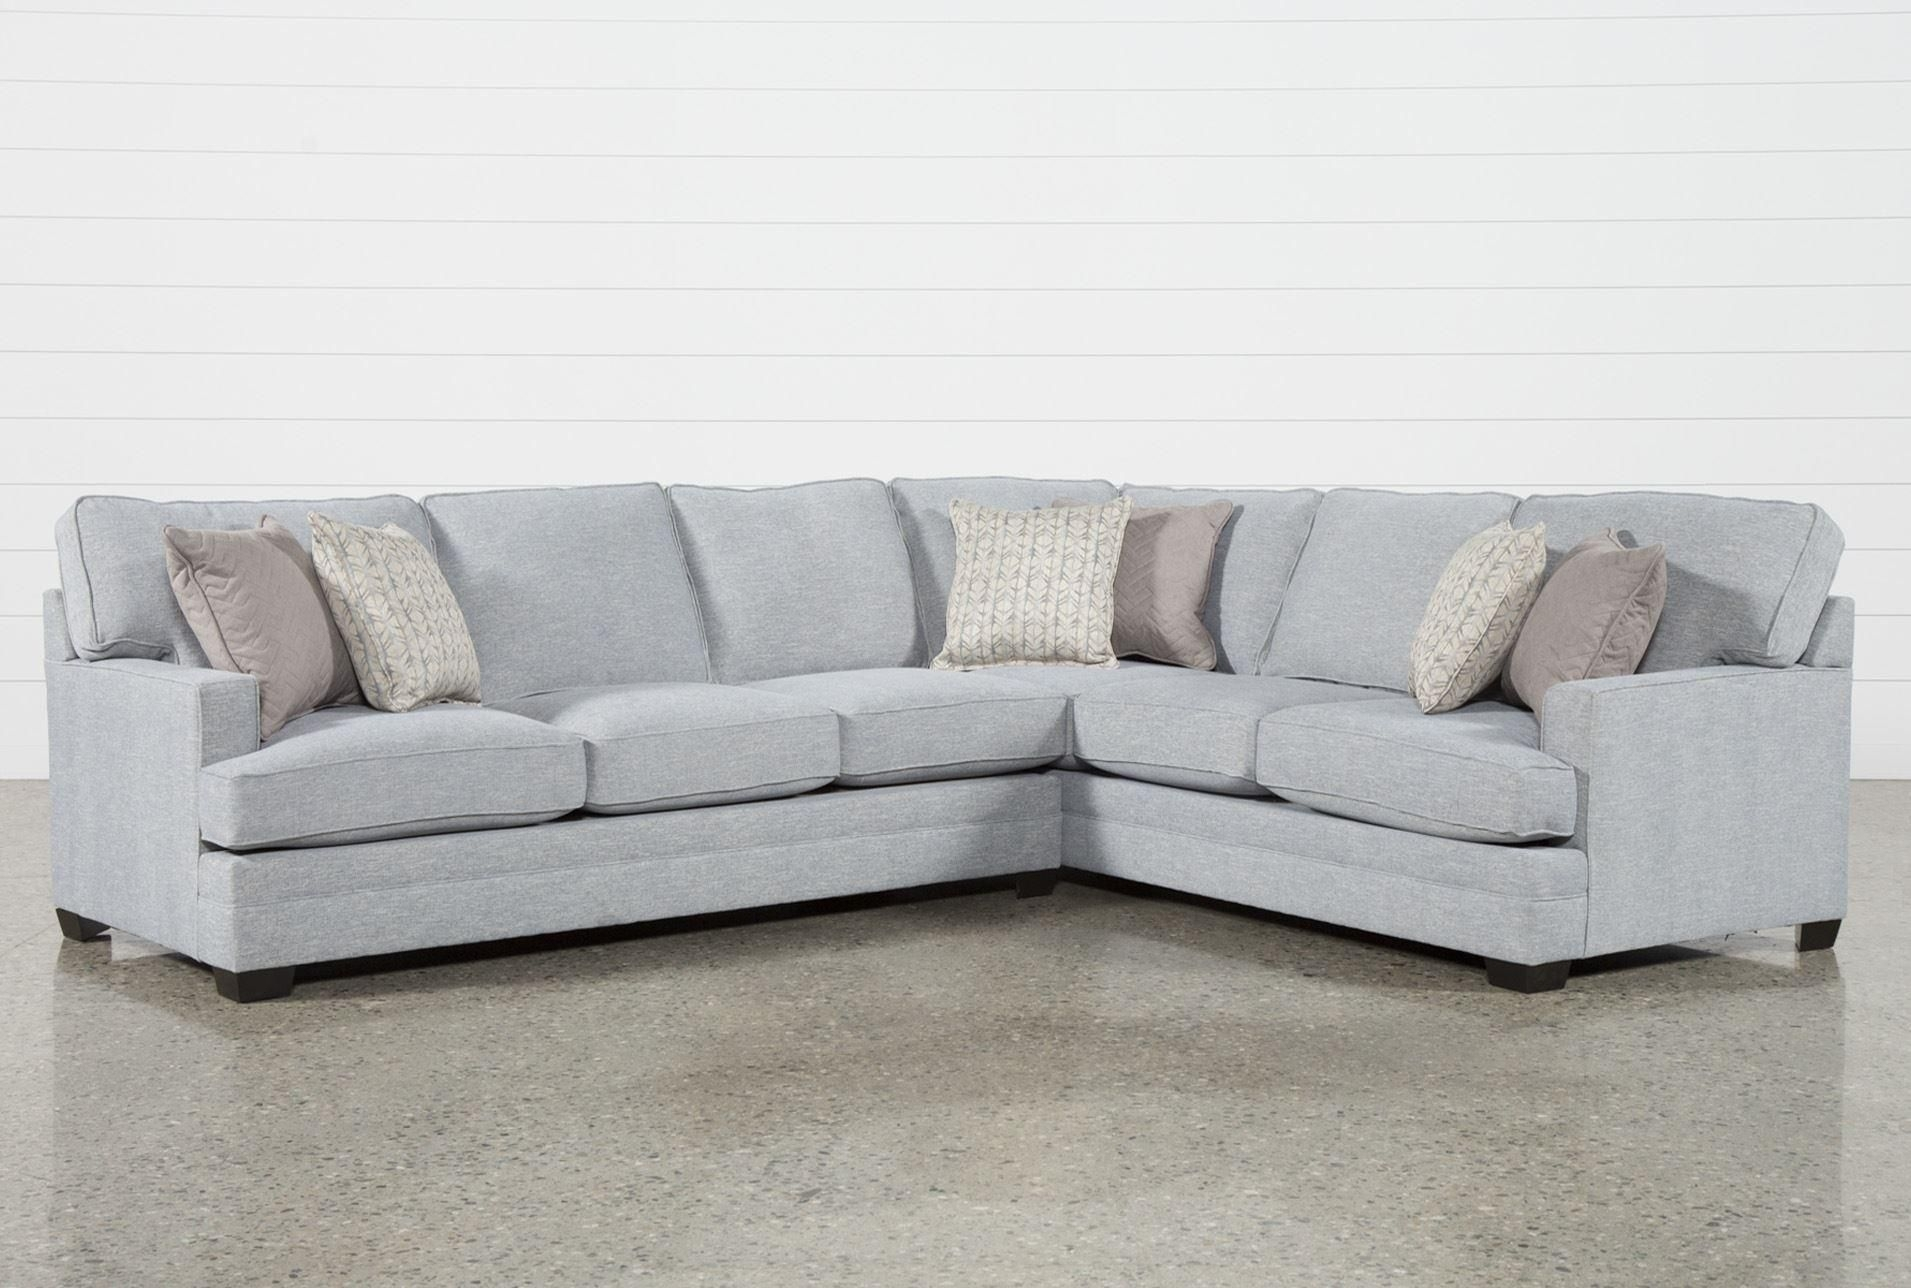 Josephine 2 Piece Sectional W/laf Sofa | For The Home | Pinterest inside Aquarius Dark Grey 2 Piece Sectionals With Raf Chaise (Image 14 of 30)